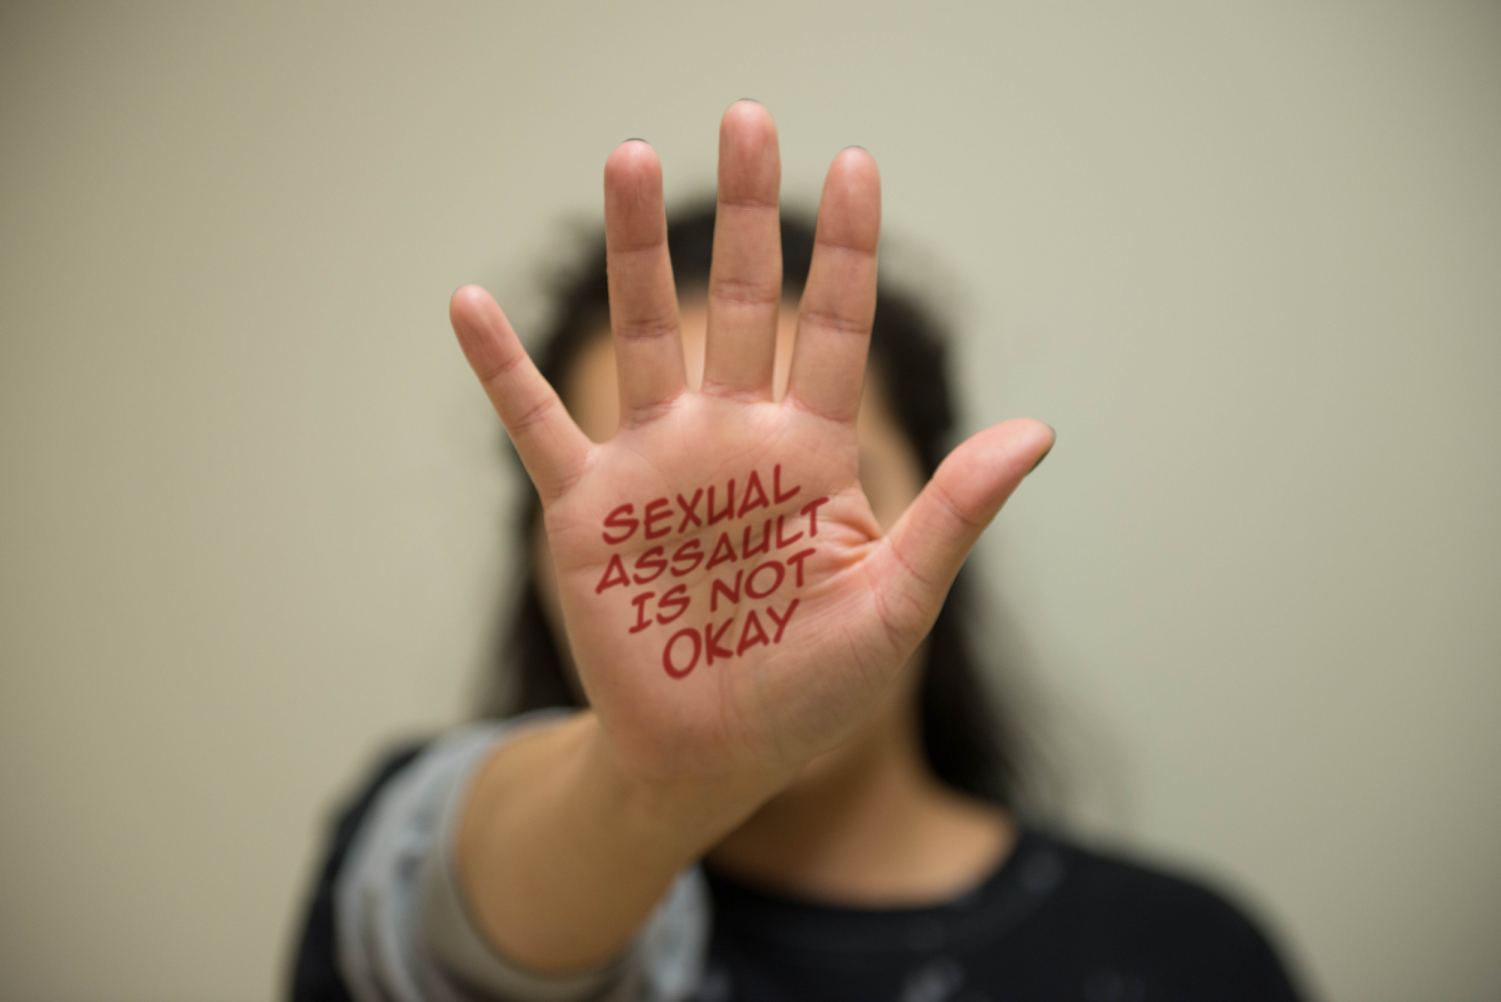 Realities of sexual assault